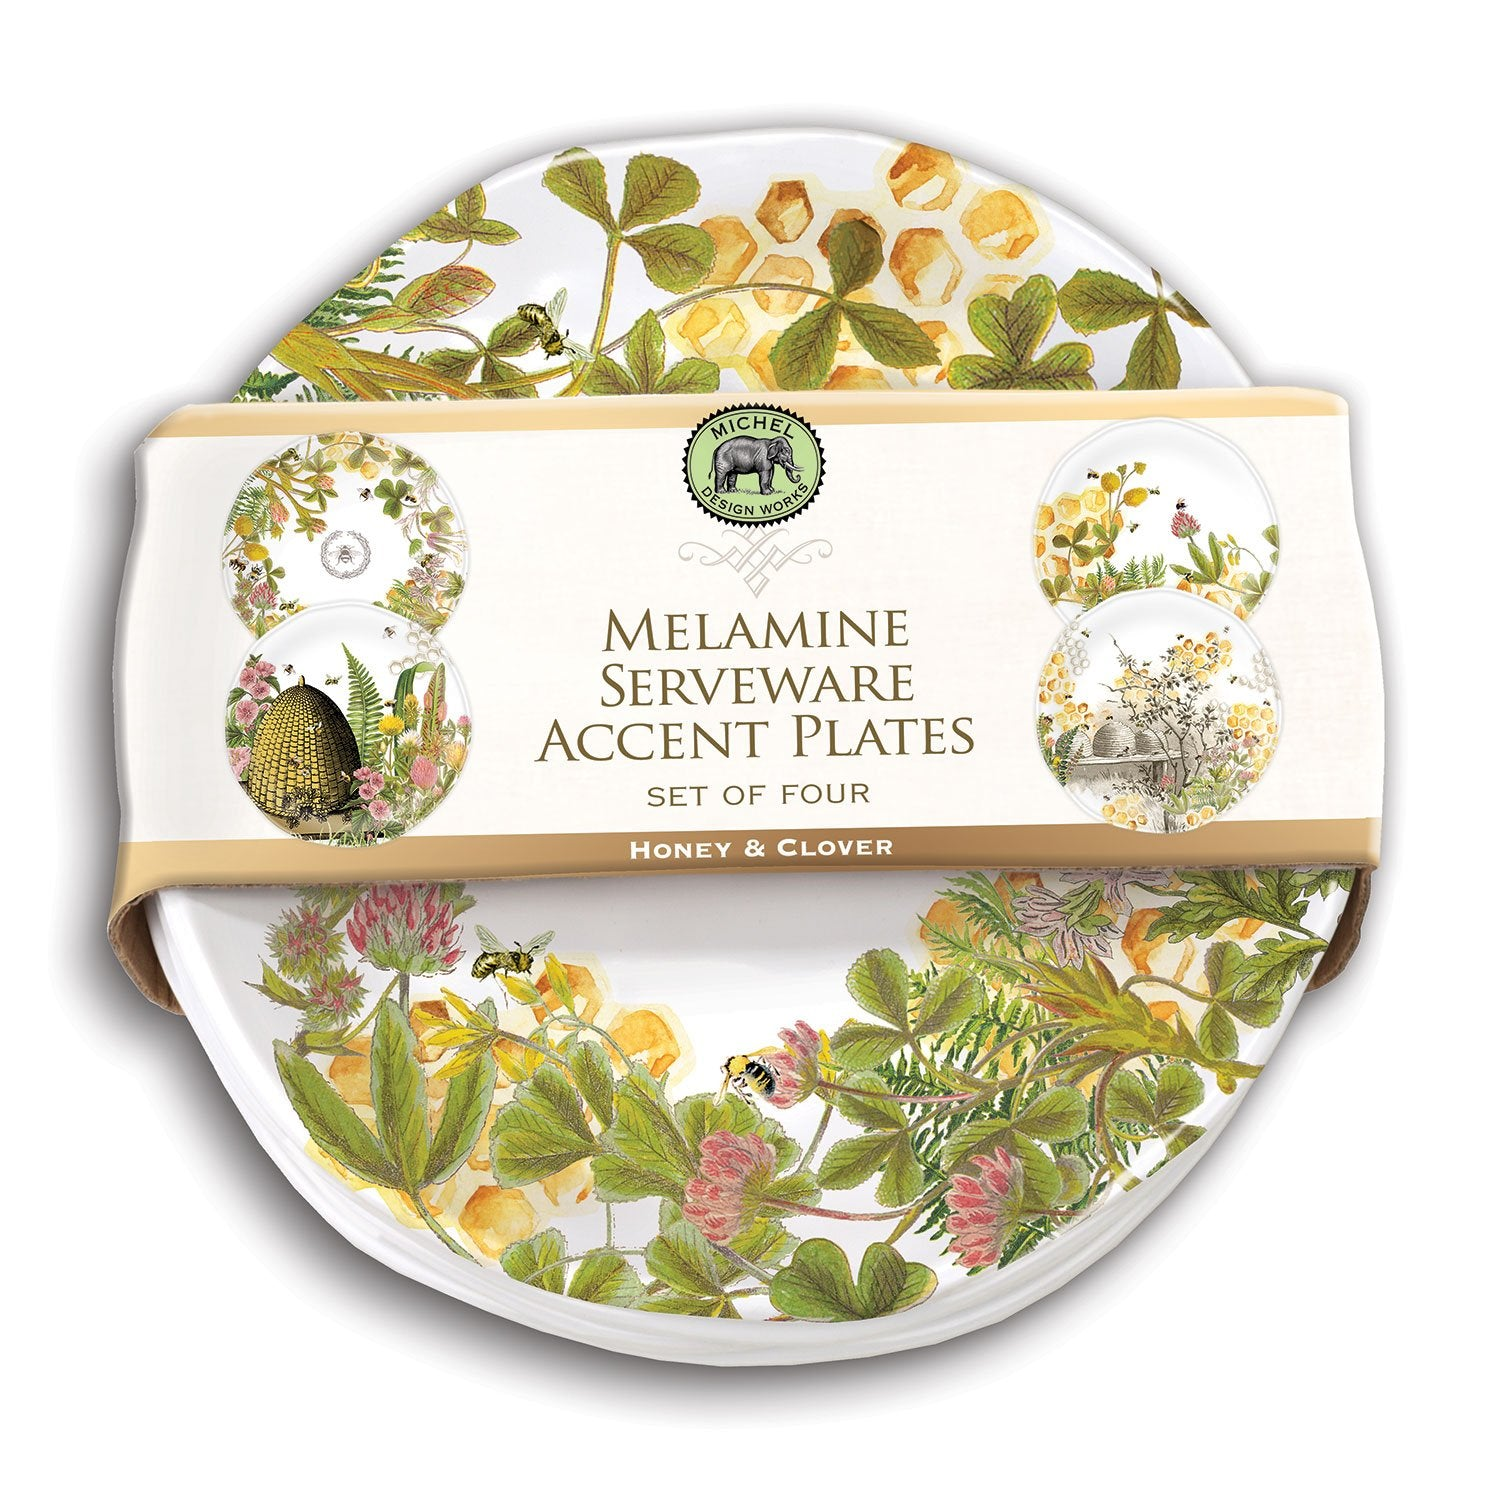 Honey & Clover Melamine Serveware Accent Plate Set